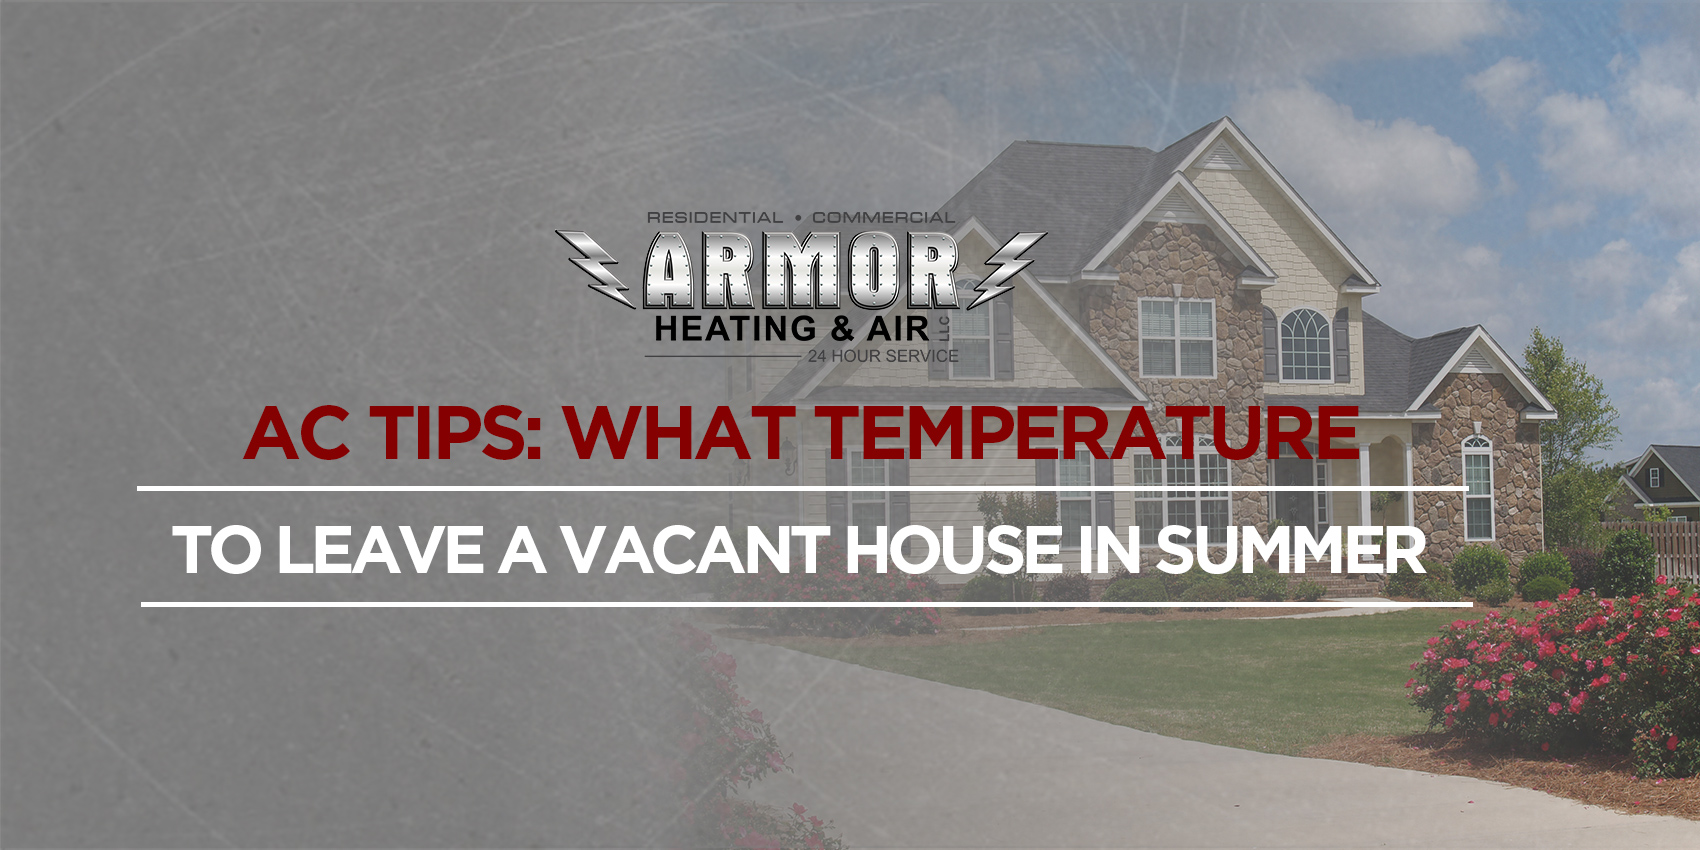 AC Tips: What Temperature to Leave a Vacant House in Summer